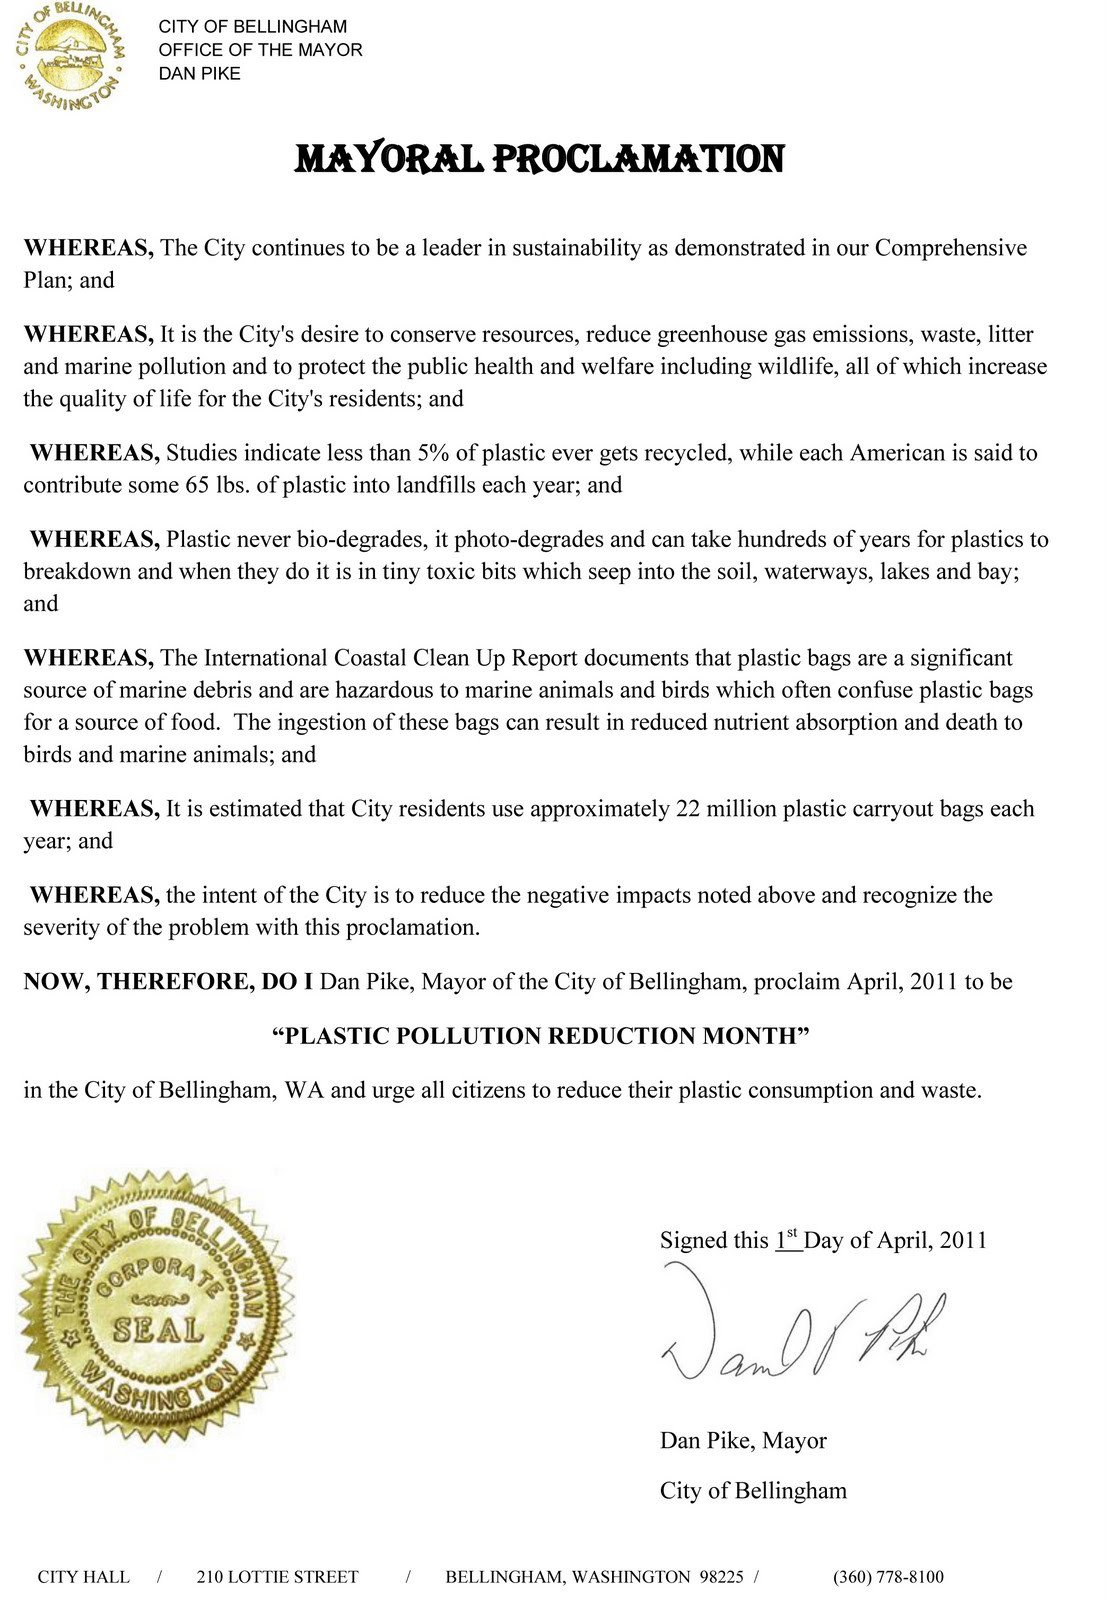 Mayoral Proclamation Template Bag It Bellingham